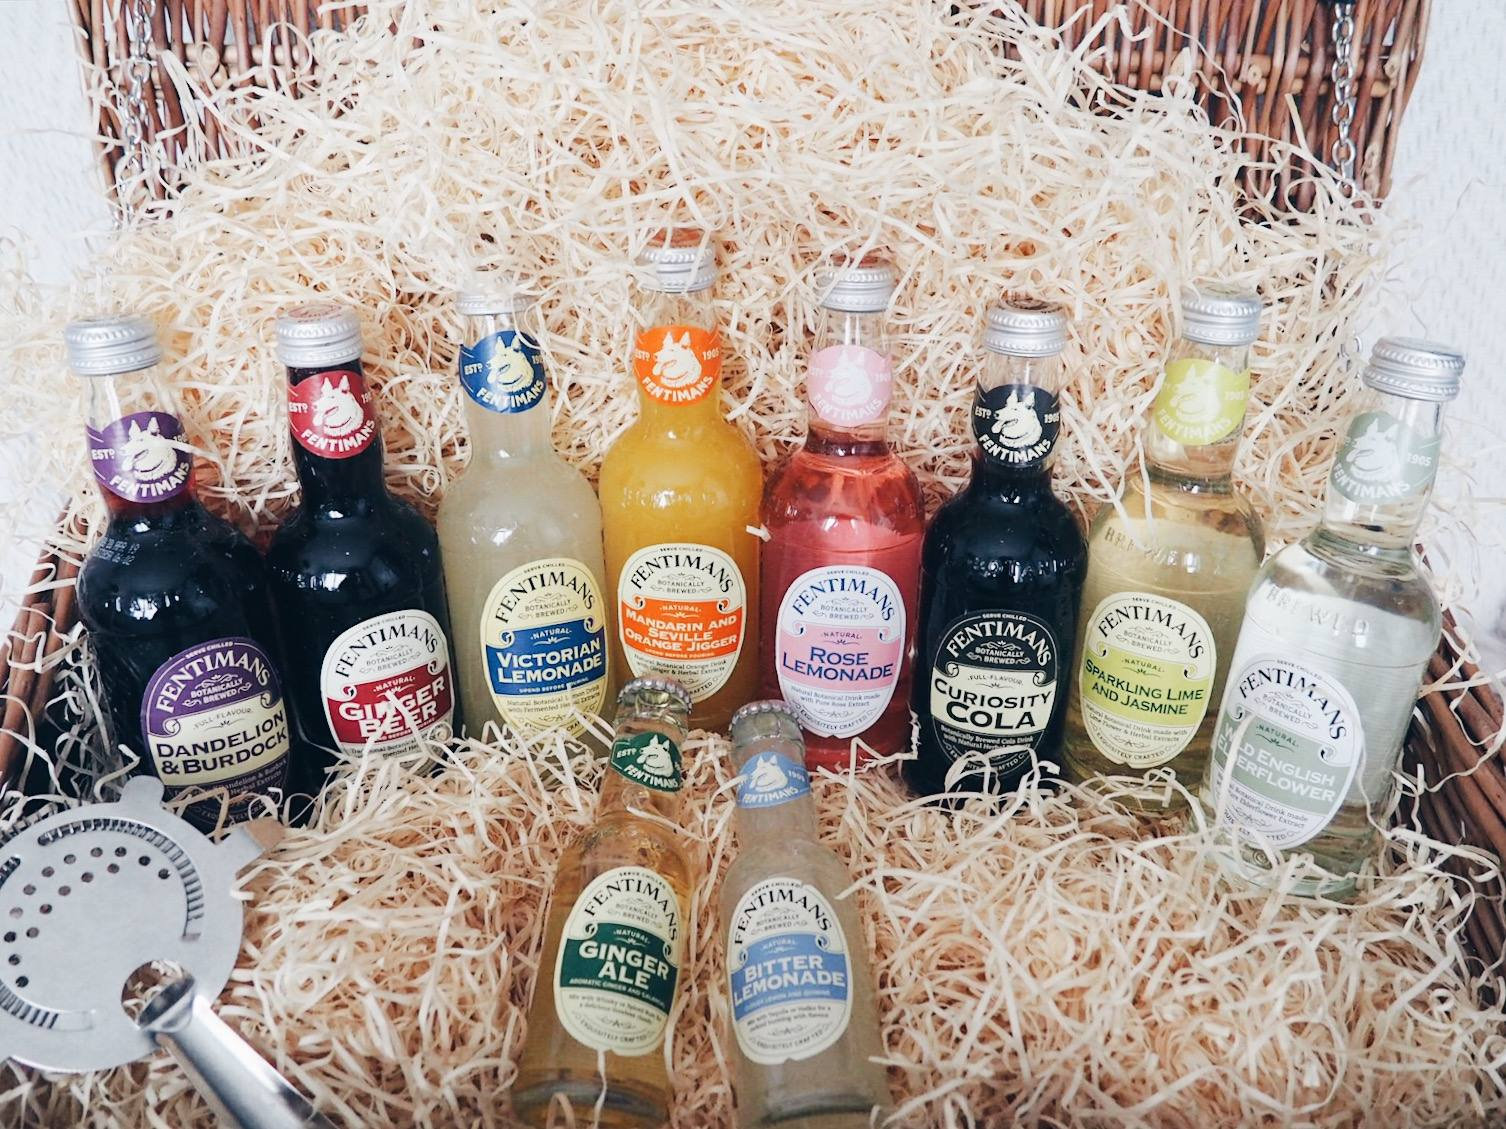 Fentiman's non-alcoholic soft drink cocktails